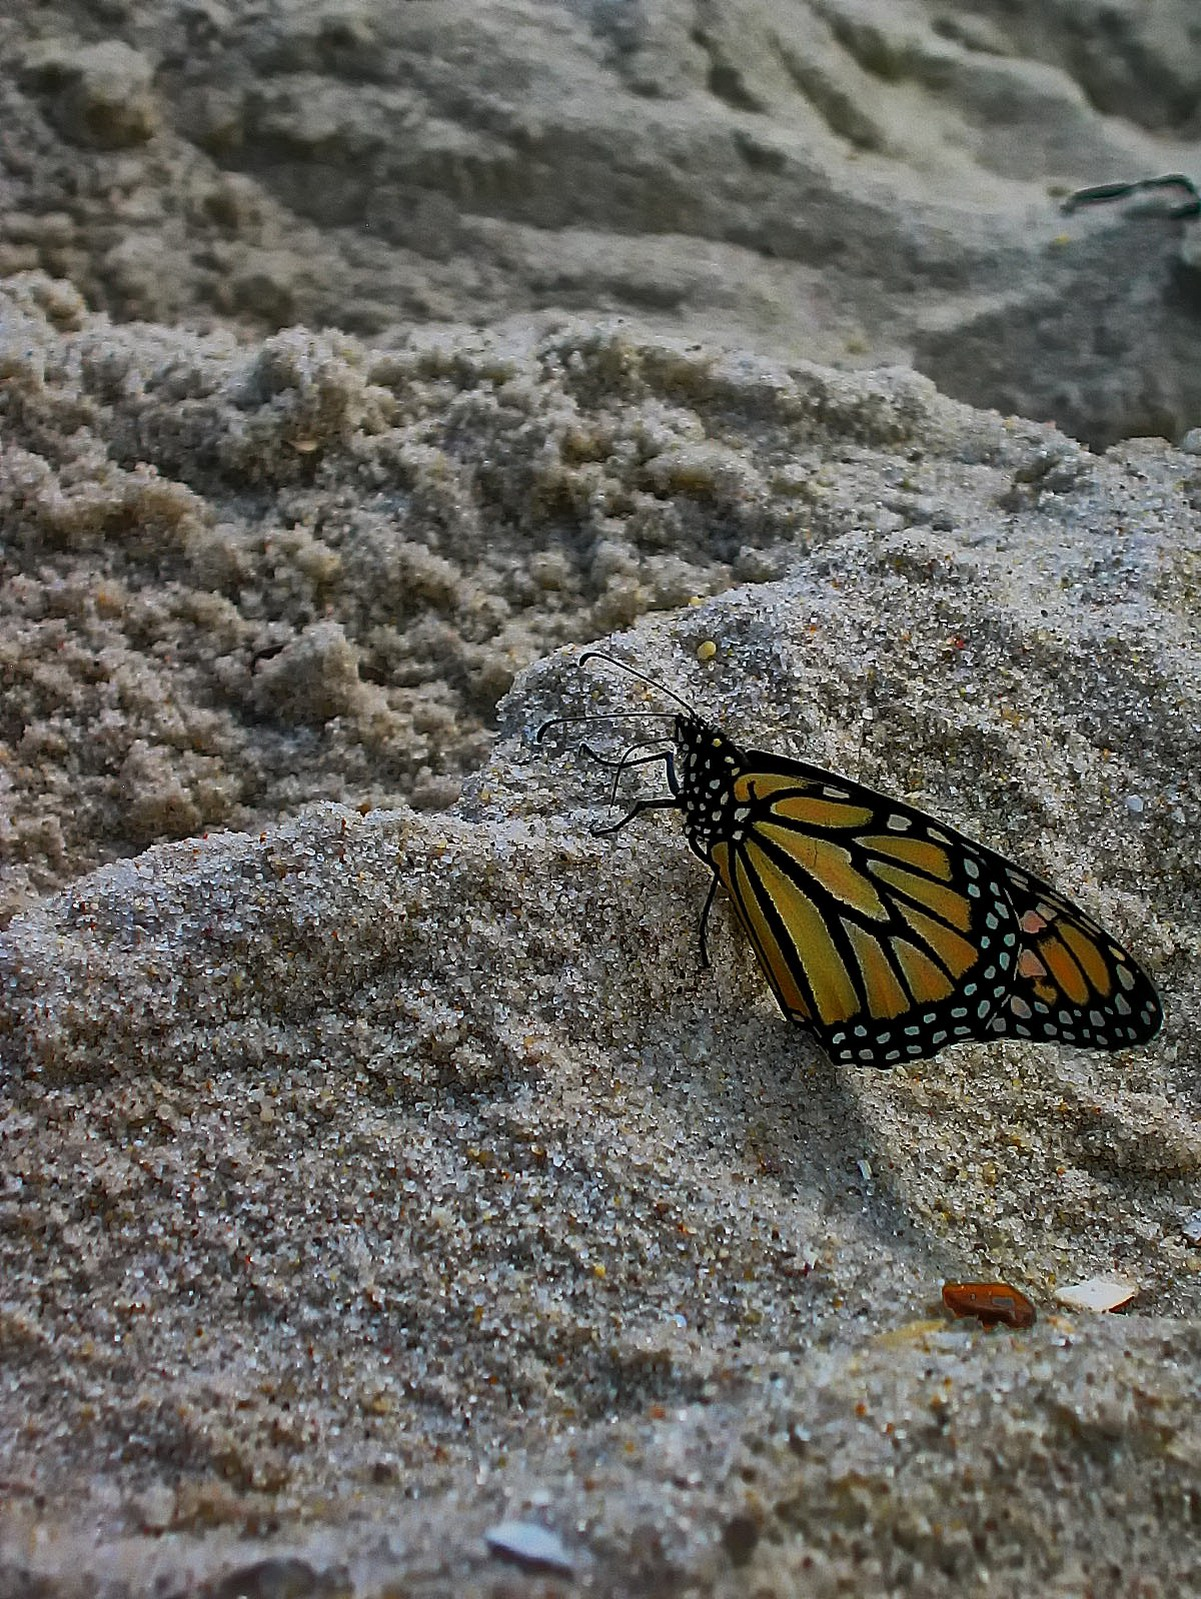 This butterfly flew miles and climbed great dunes for a view of the ocean.